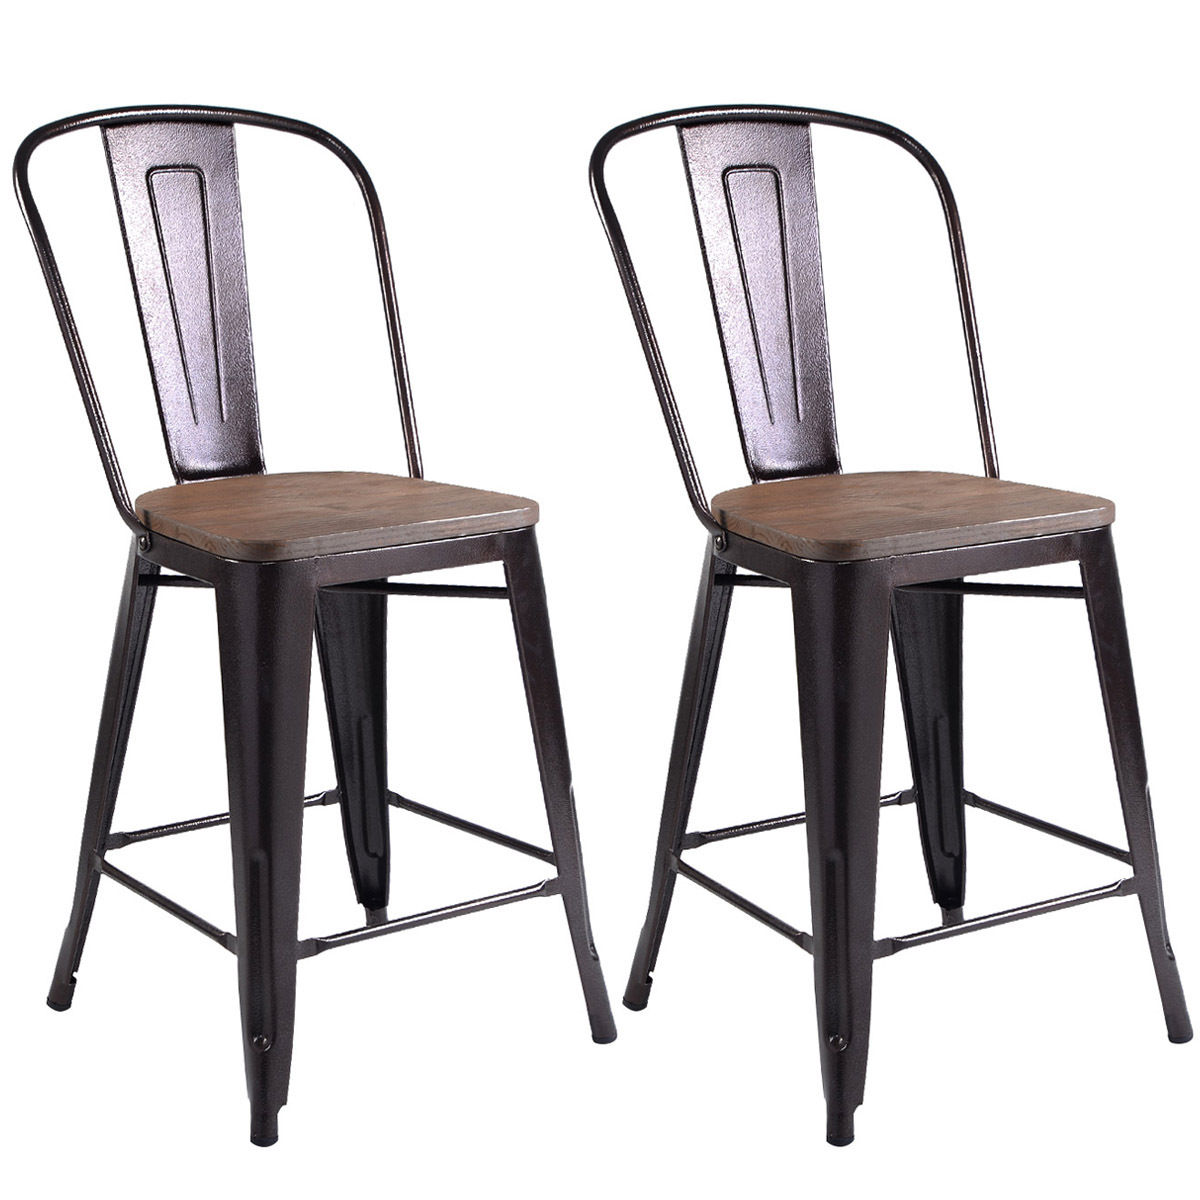 Costway Copper Set of 2 Metal Wood Counter Stool Kitchen Dining Bar Chairs Rustic